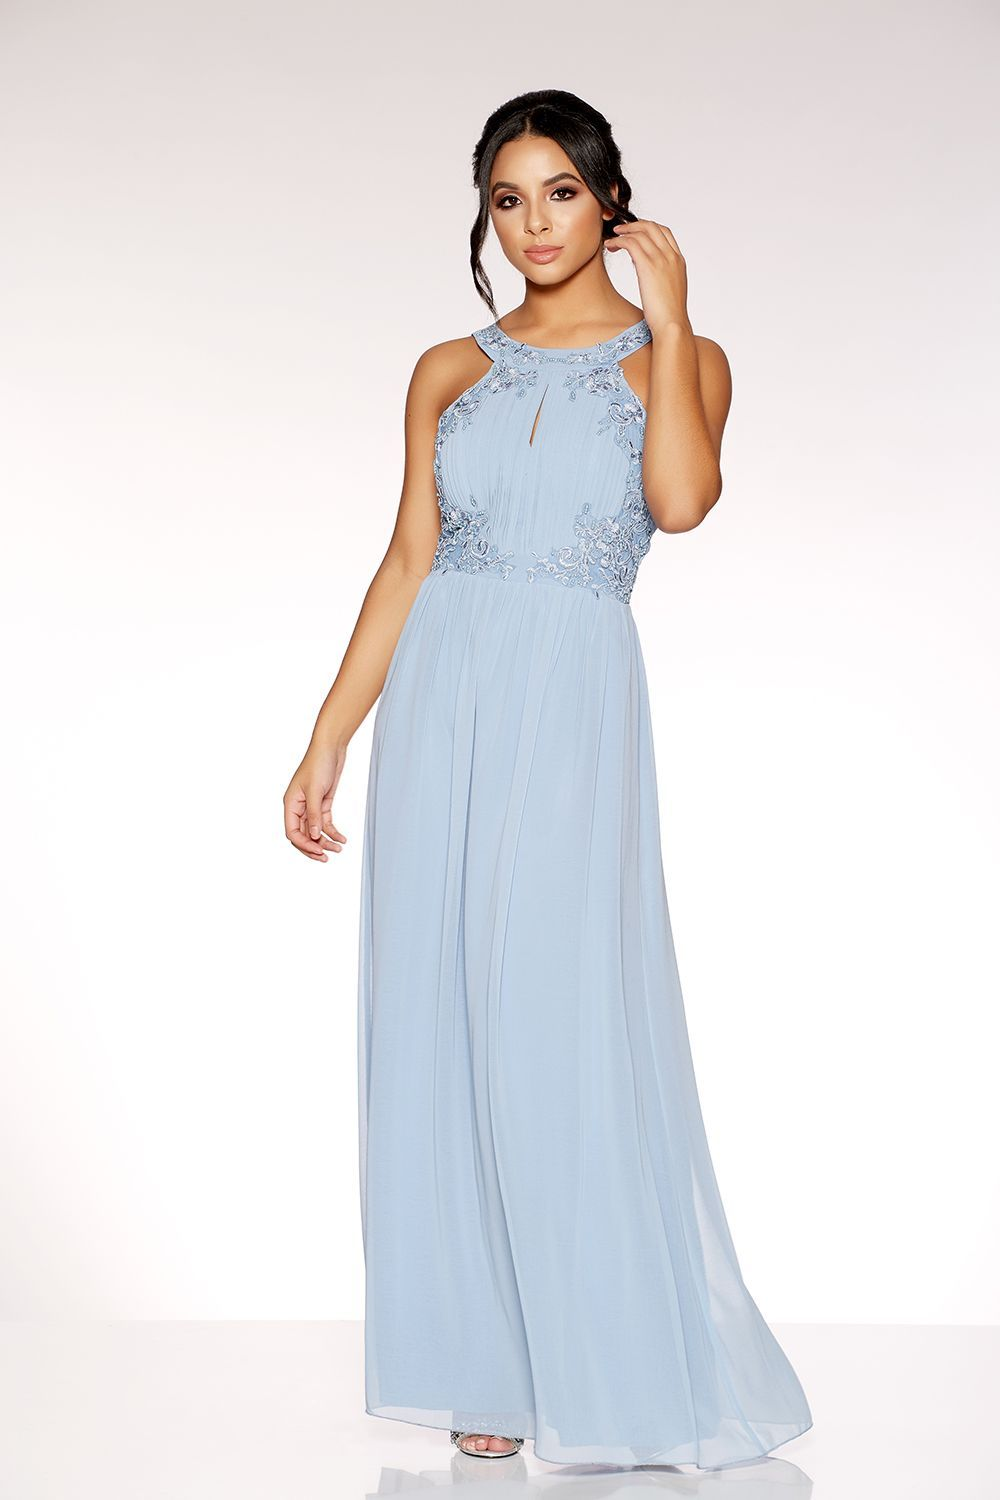 abdaa1b995c Powder Blue Chiffon Embellished High Neck Keyhole Dress